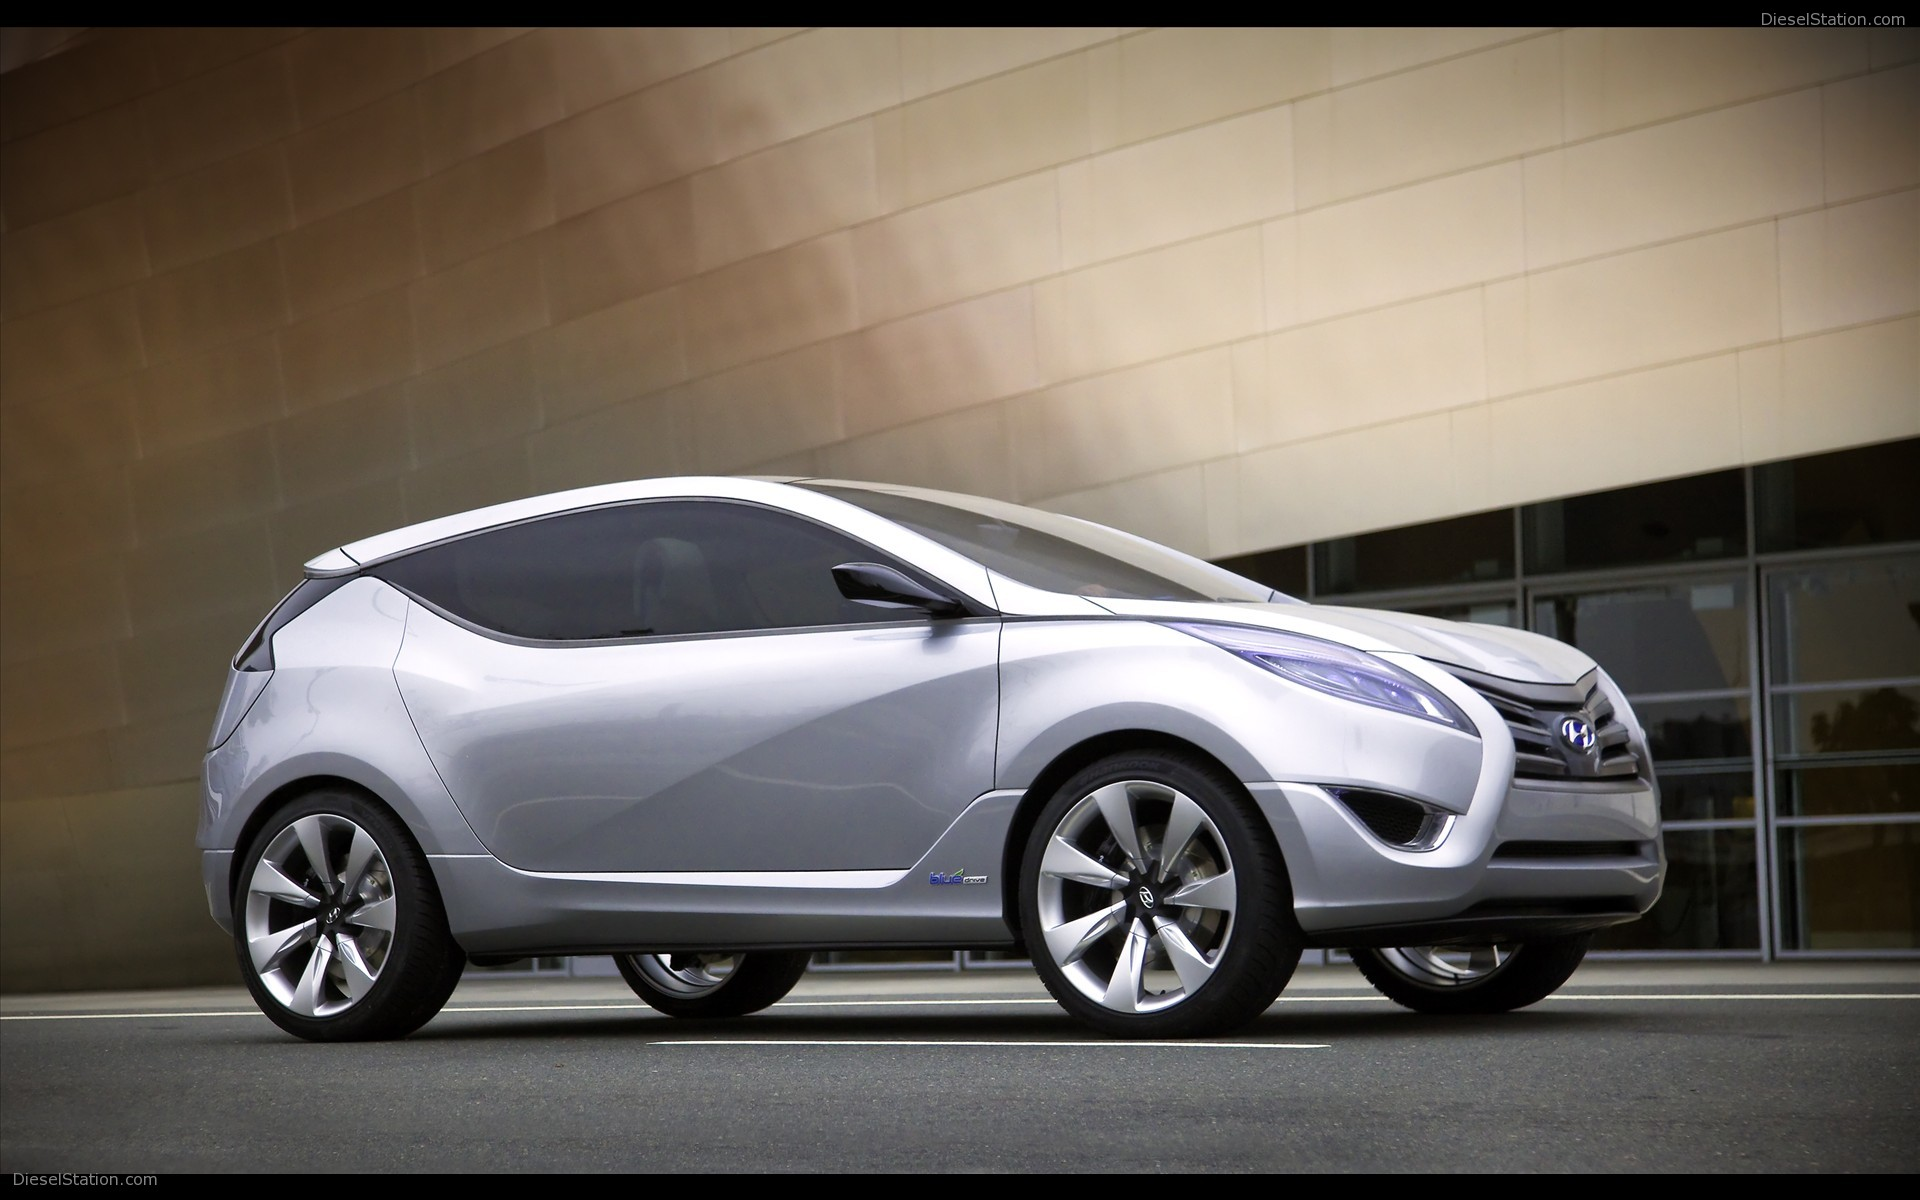 Hyundai nuvis photo - 1